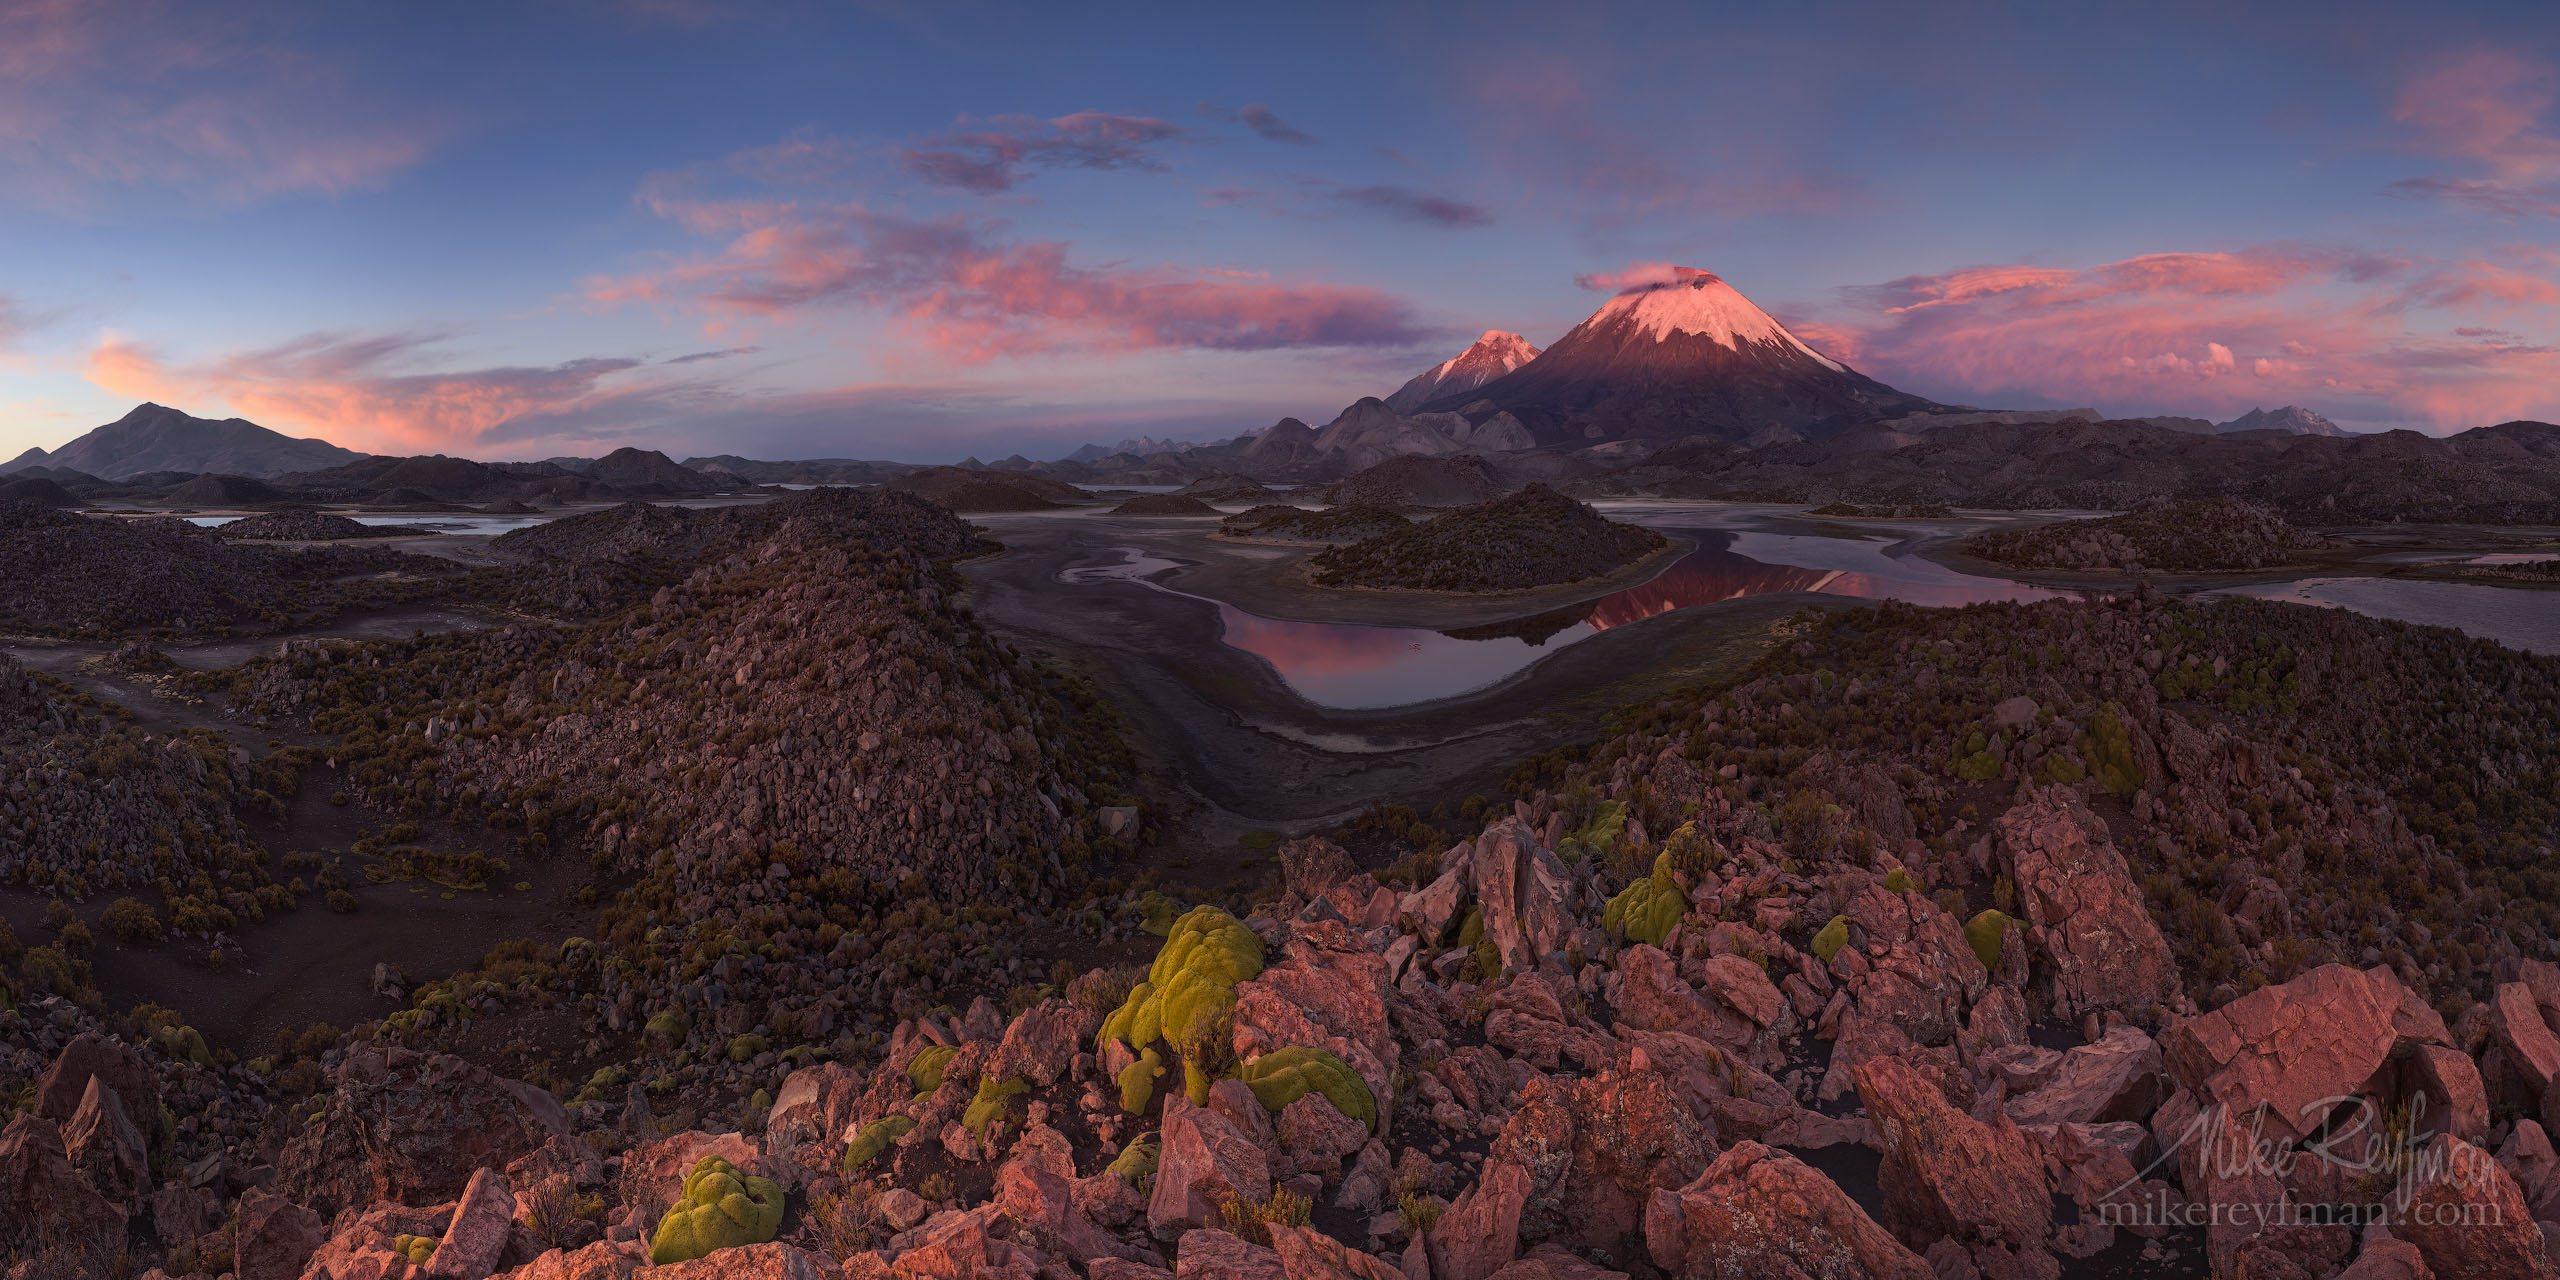 Nevados de Payachata (Two Brothers). Parinacota (Flamingo in local Aymara language) and Pomerape (Puma in Aymara) Volcanos with Cotacotani Lagoons on the foreground. Lauca Biosphere Reserve, AltiPlano, Chile. P12-MRAIR3242-60-Pano - Selected panoramic images with 2:1 aspect ratio - Mike Reyfman Photography